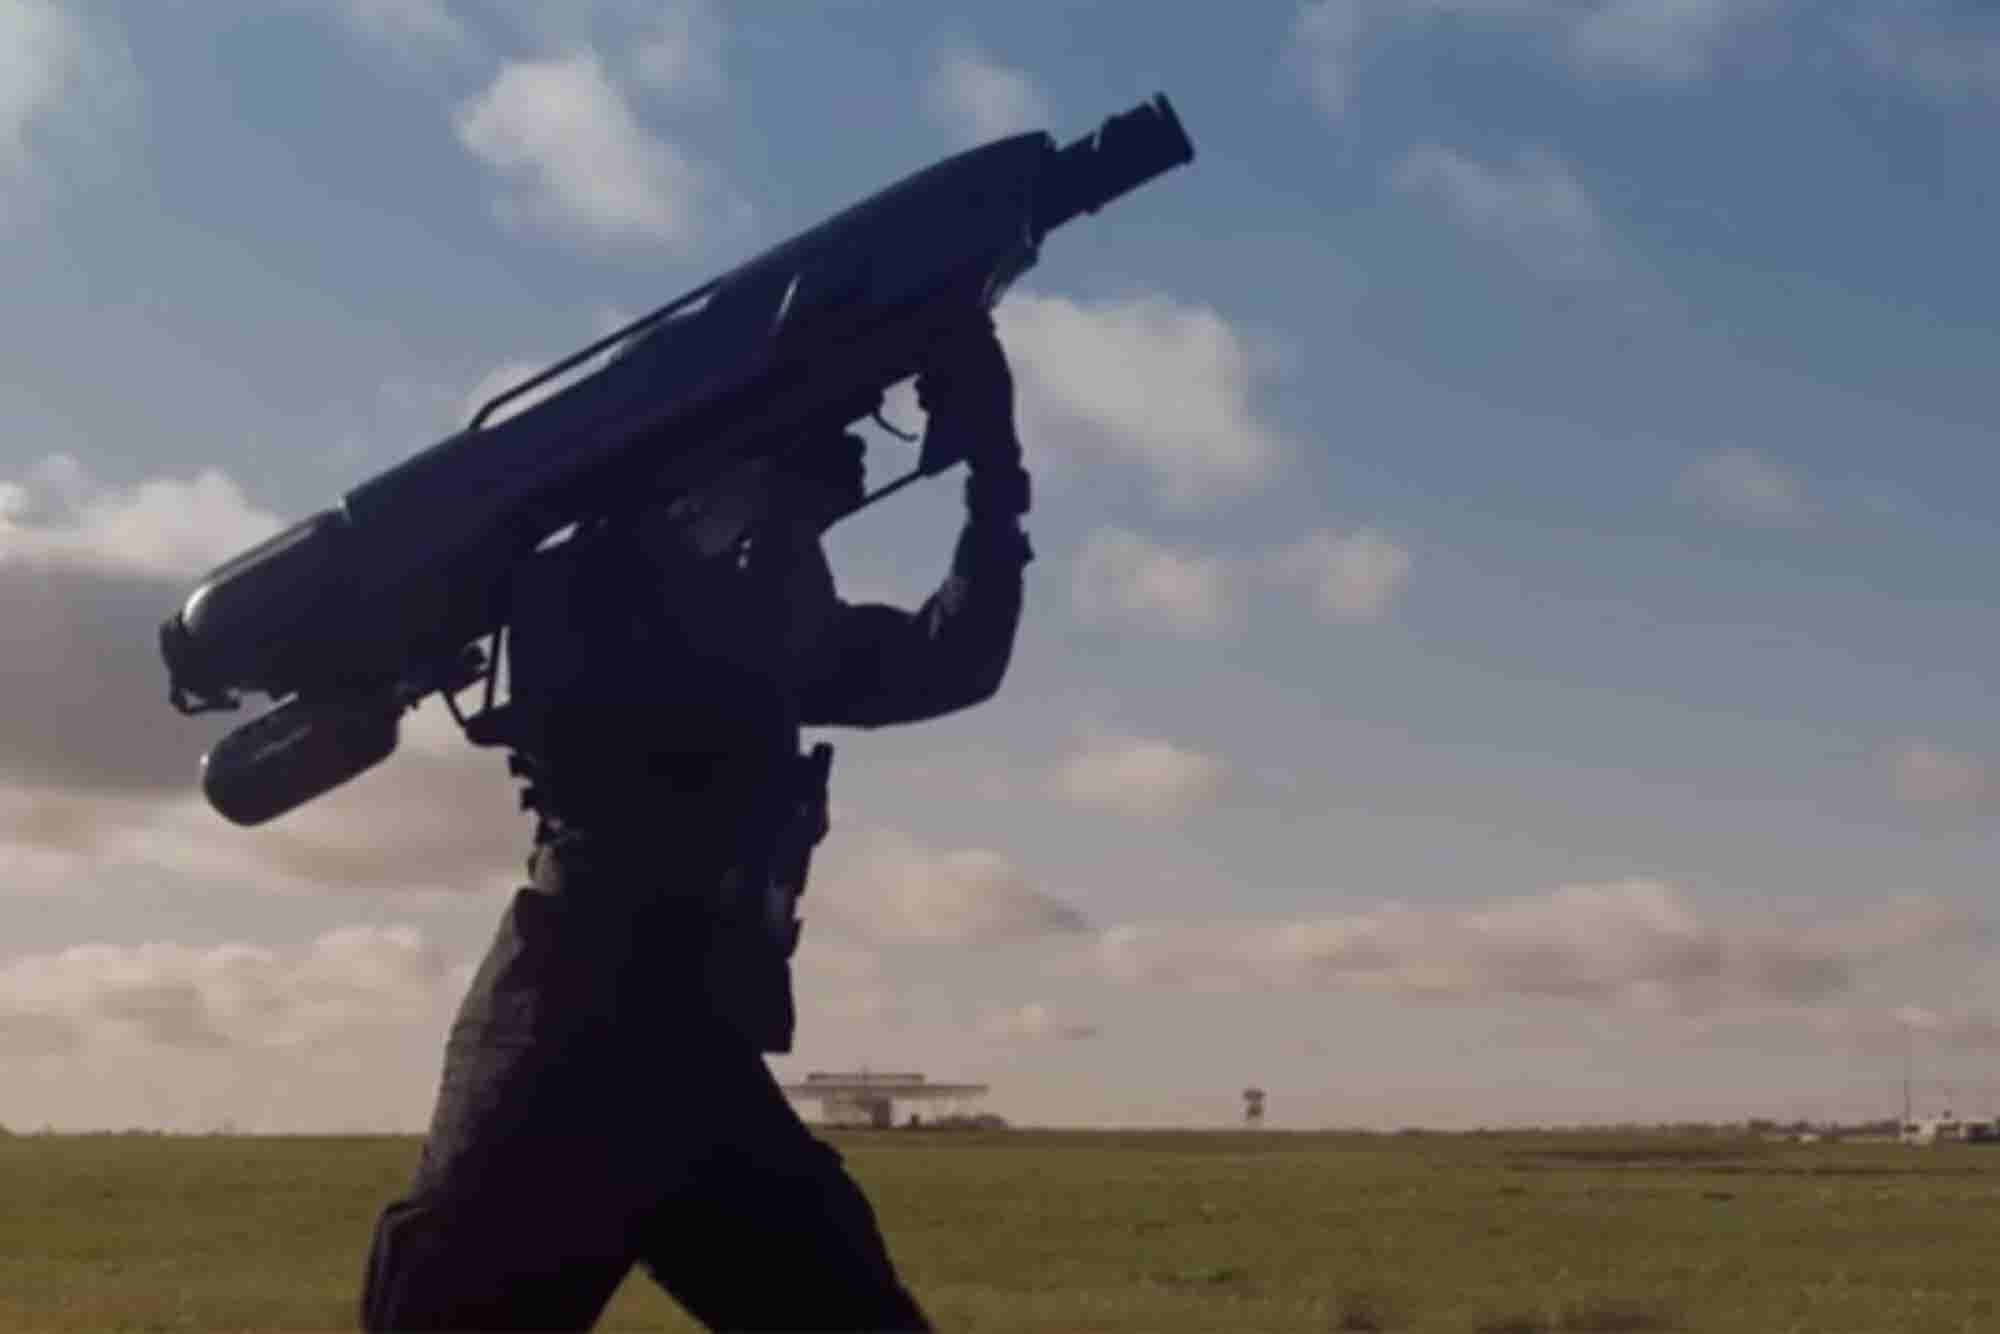 Video: This Cannon Shoots Nets to Take Down Pesky Drones